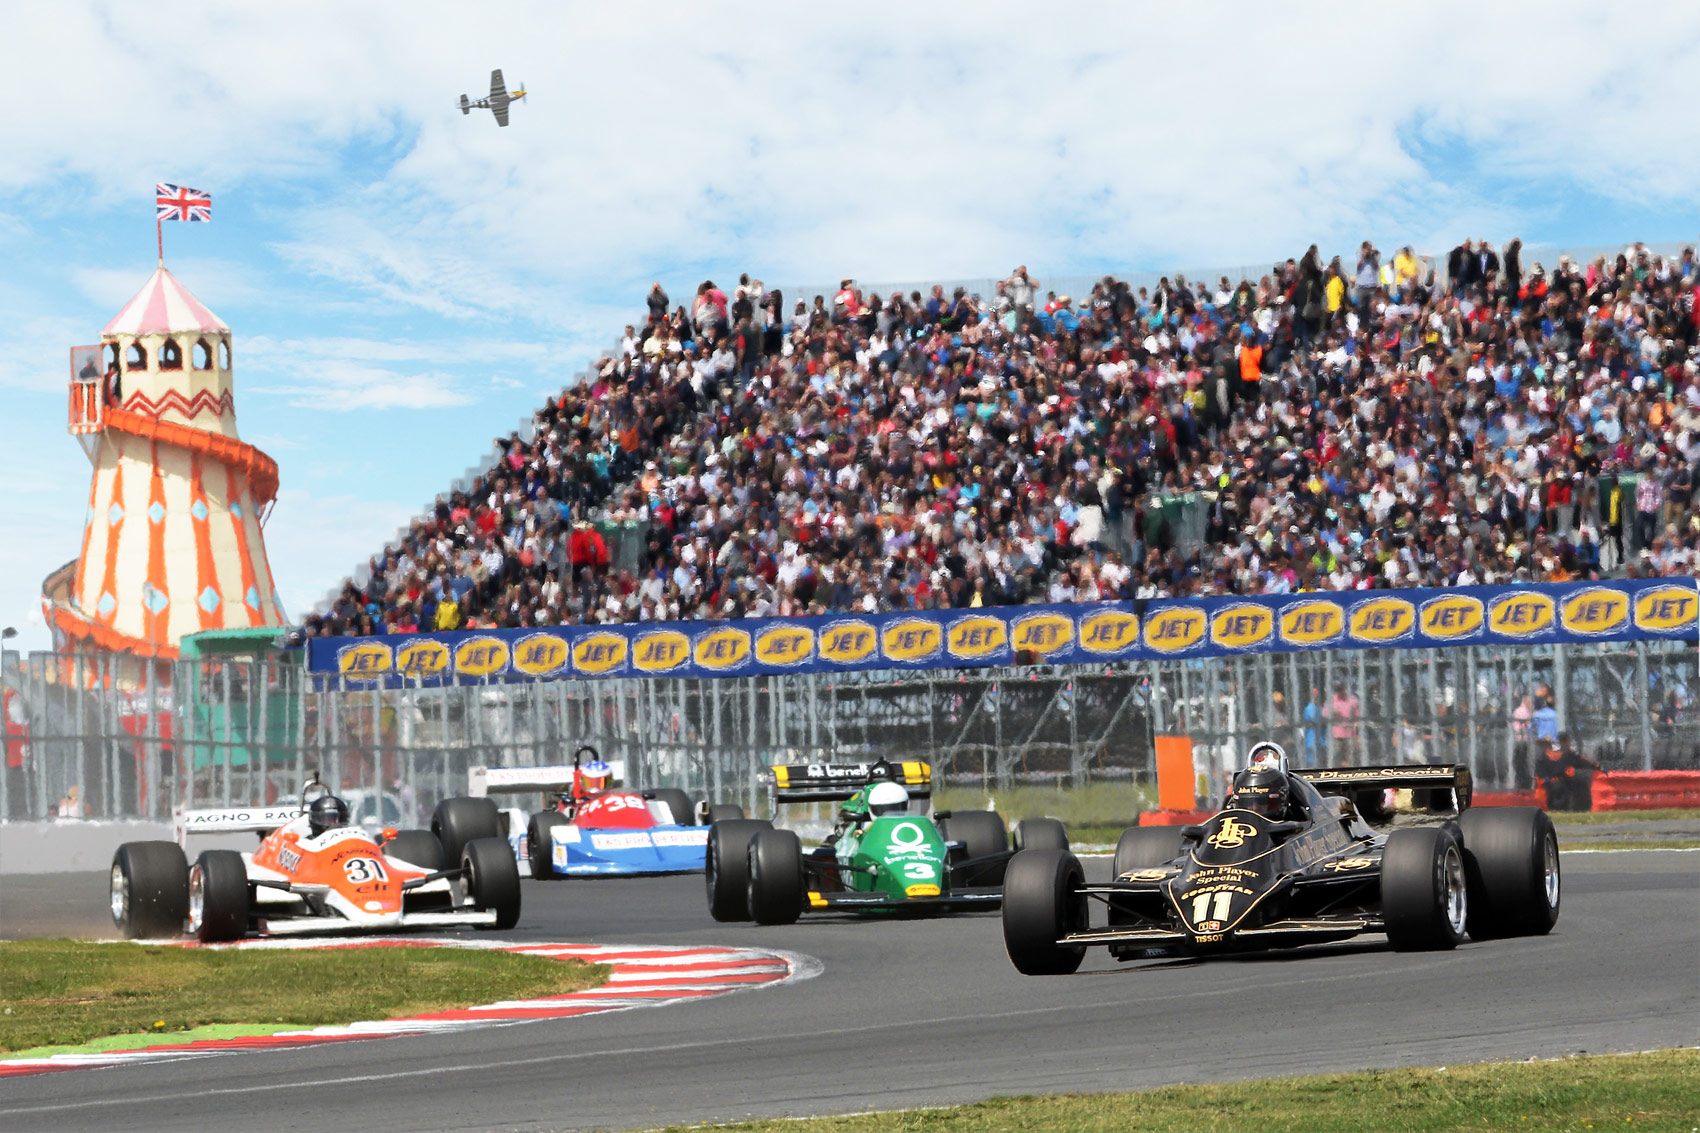 Definitive Guide To The VIP Experience At The 2016 Silverstone Classic